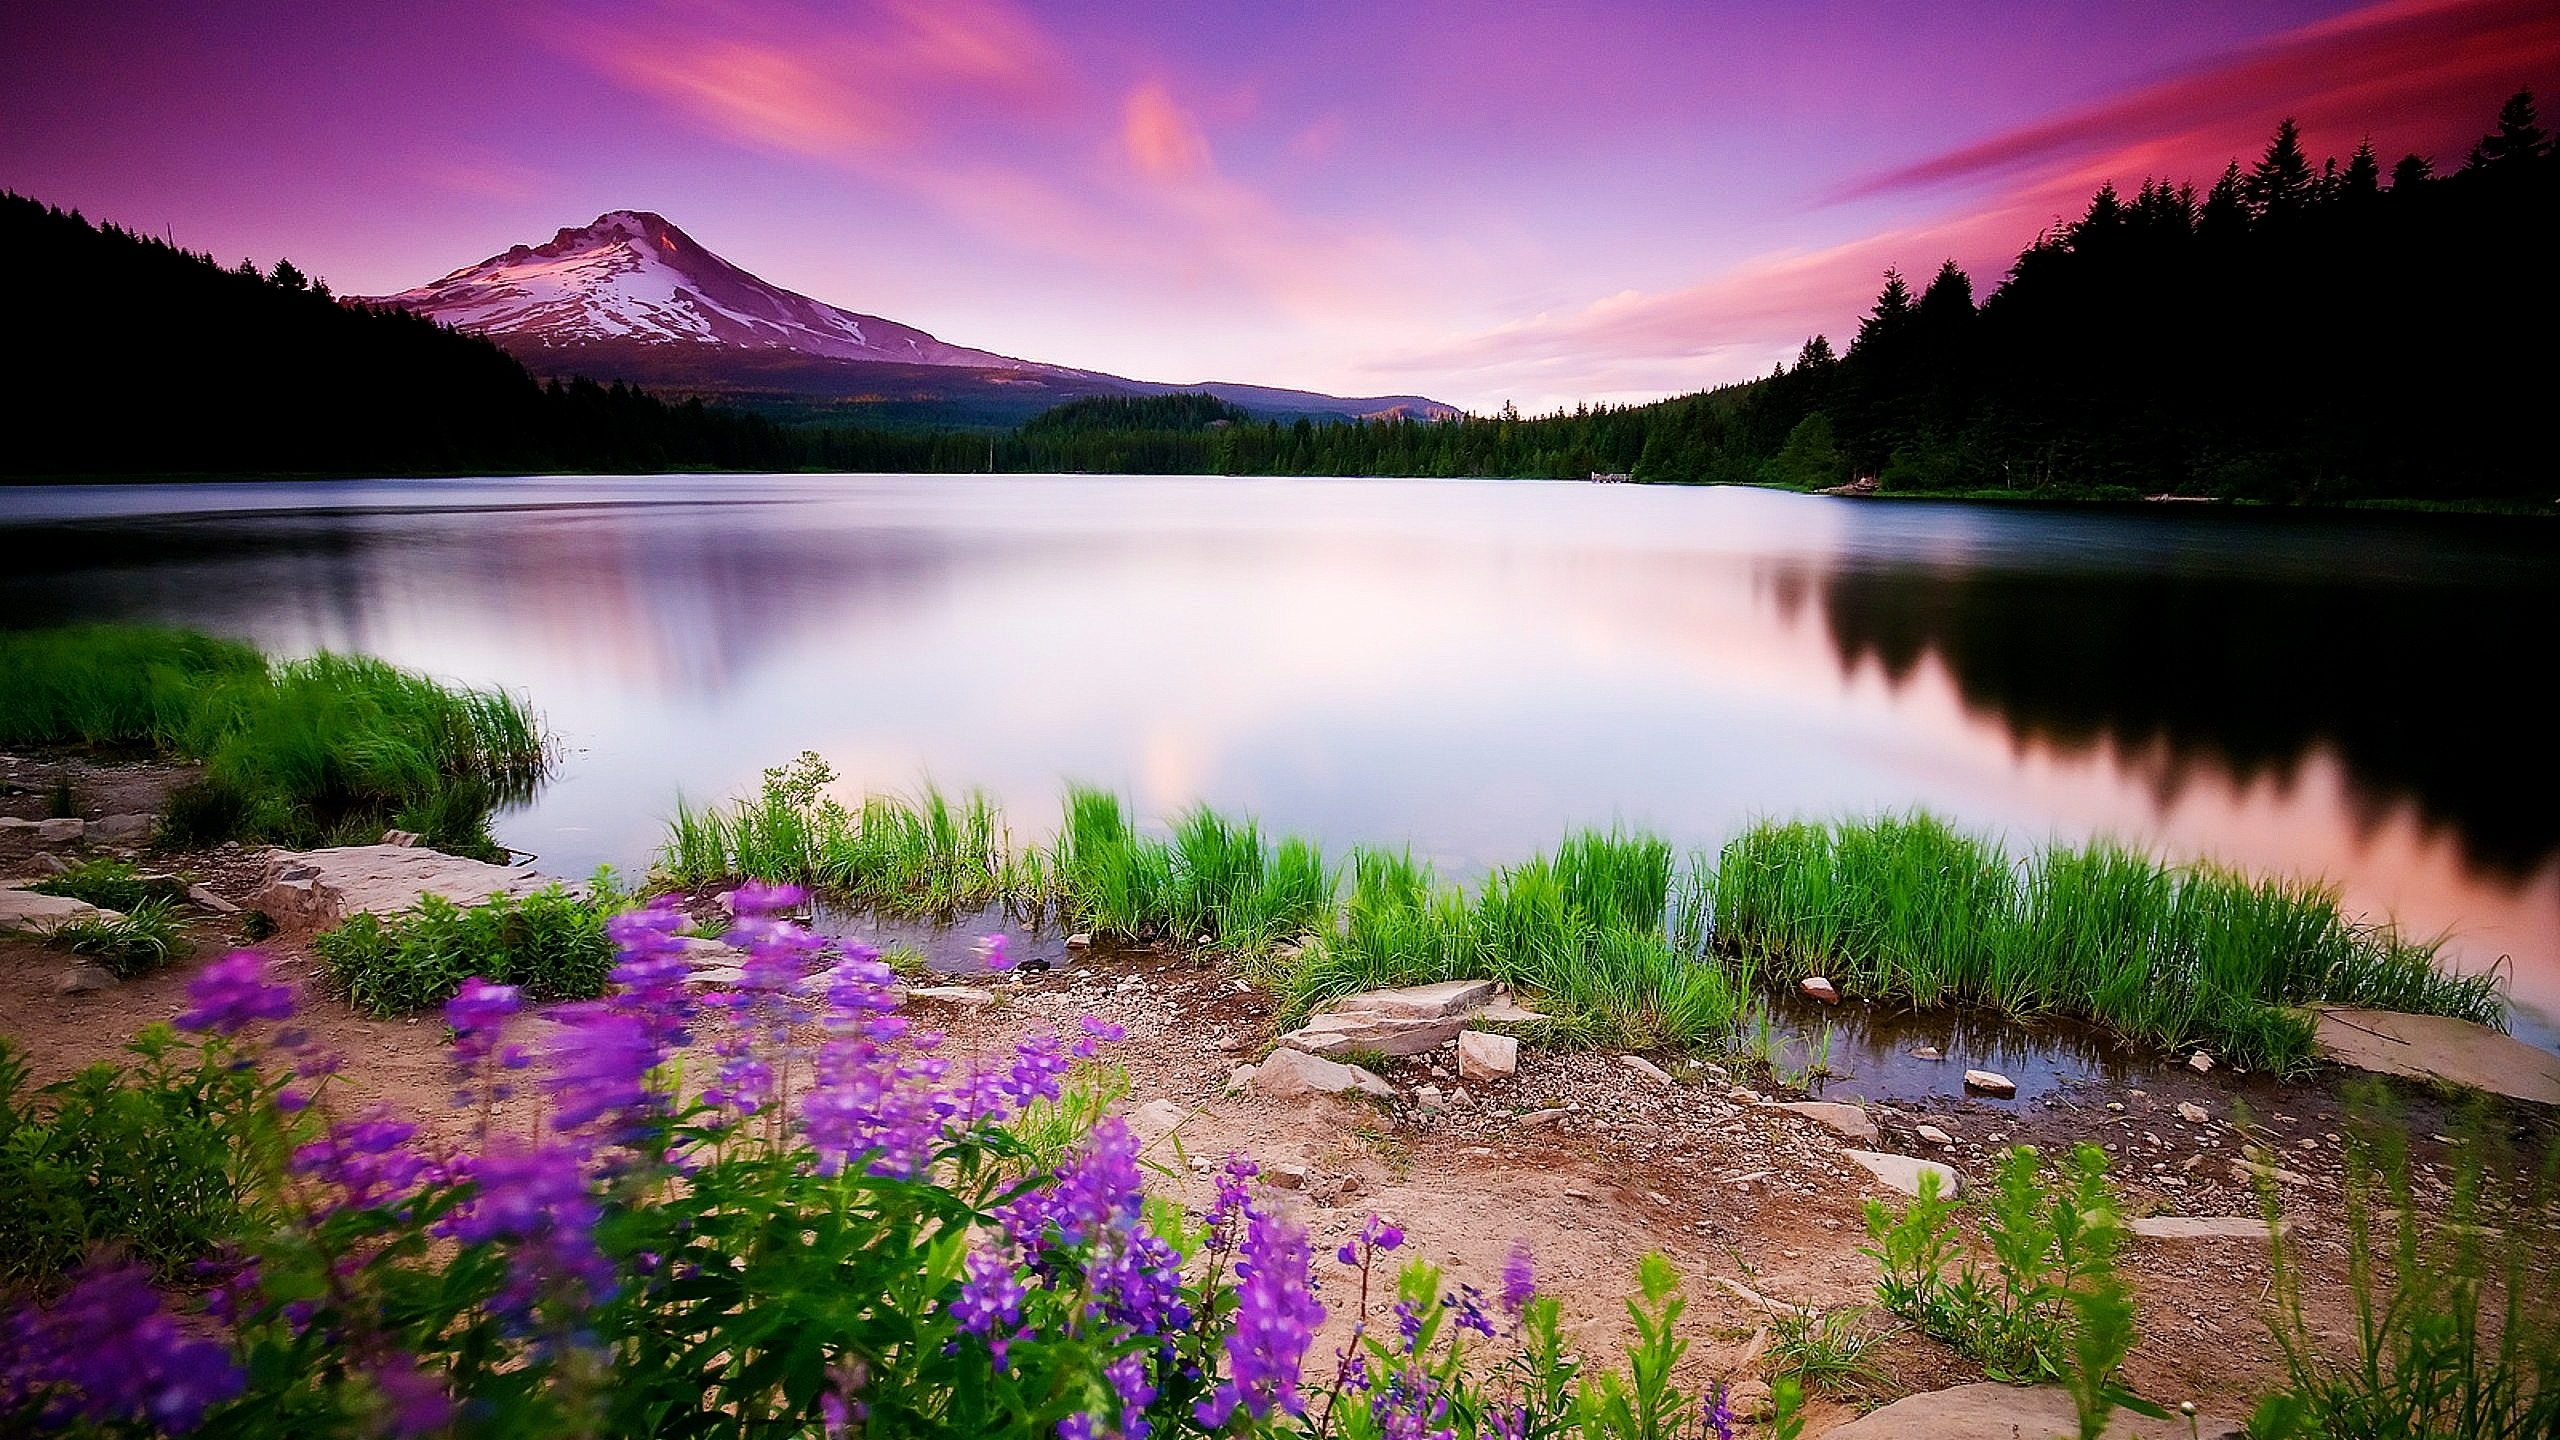 widescreen-nature-wallpapers-high-resolution-gallery-(66-plus)-pic